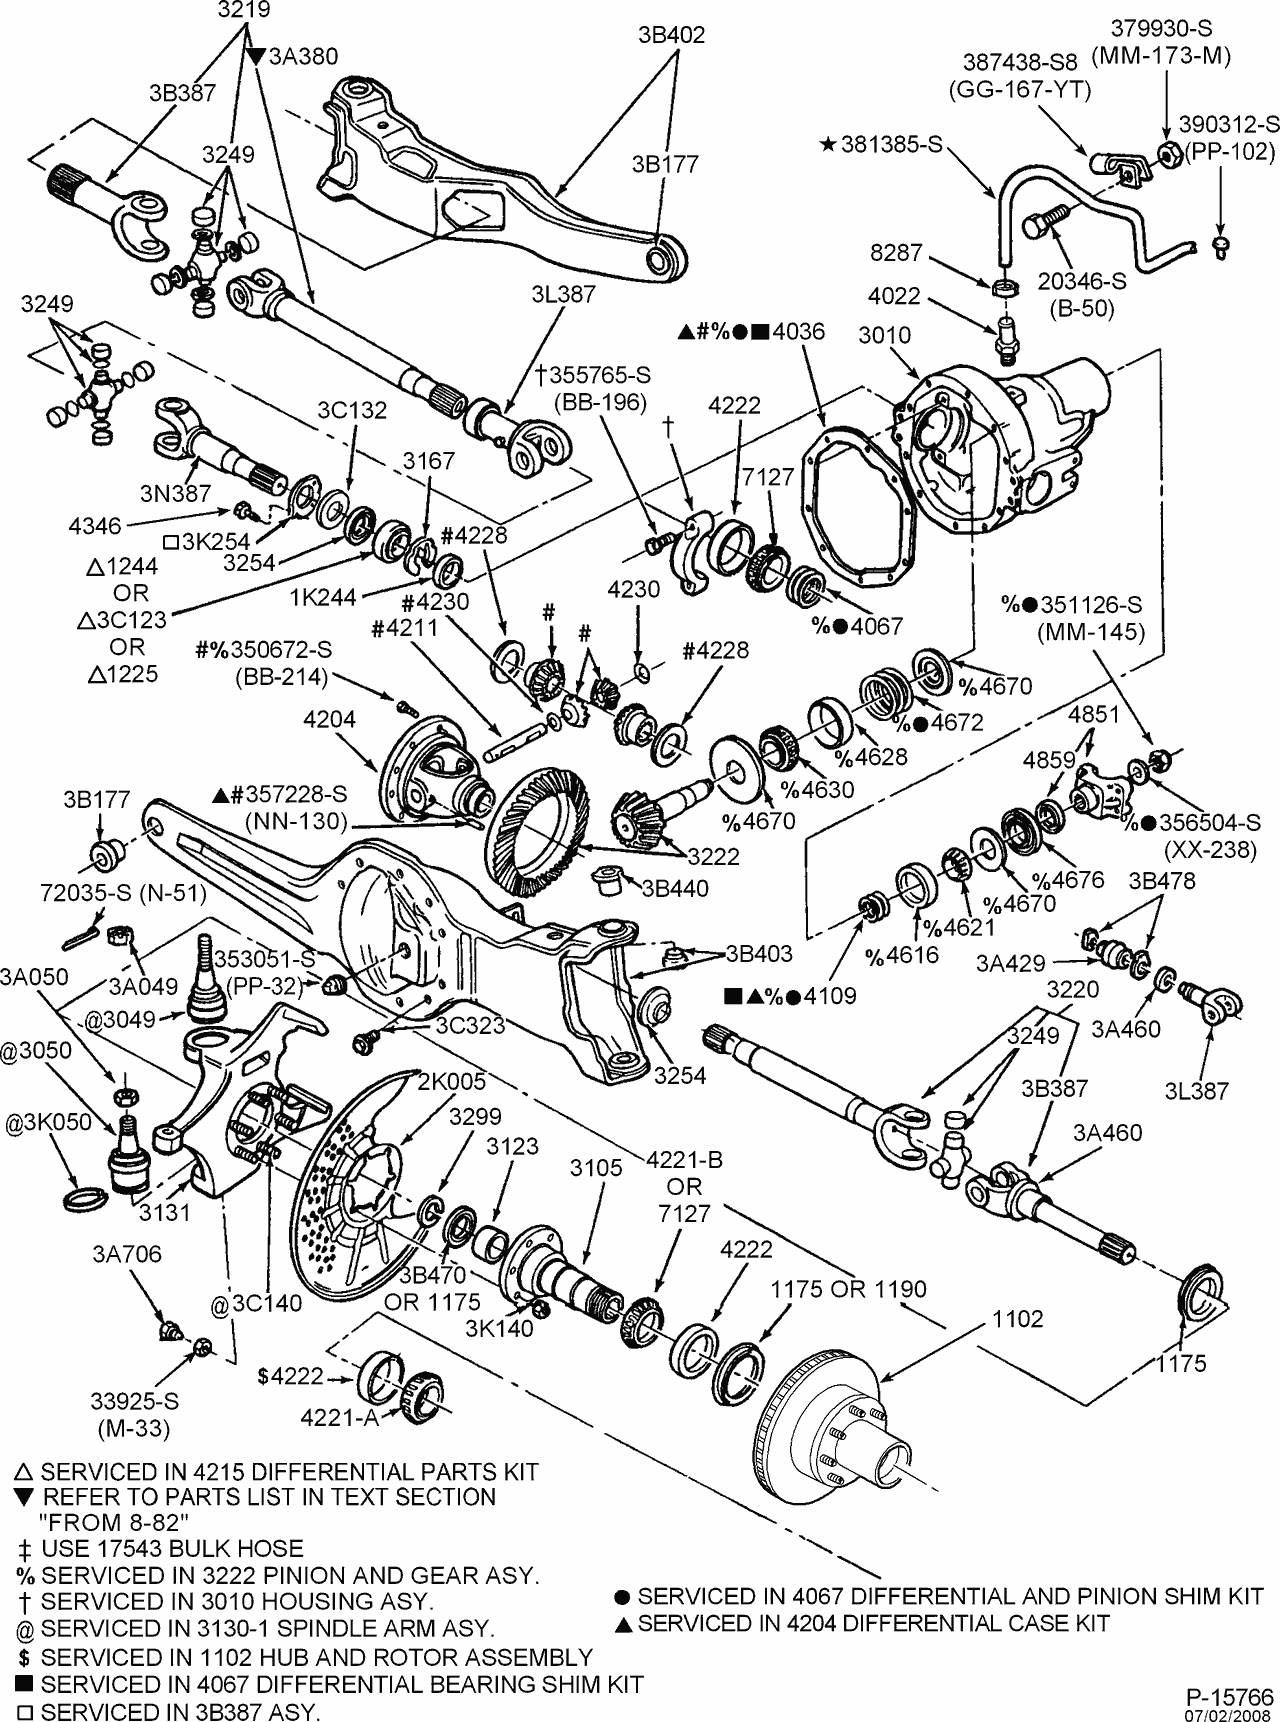 F250 Gem Module Location further 1020137 Breaking Hub Bolts as well 361370489558 besides 360 Ford V8 Engine Diagram Wallpaper 4 besides Five Wheel Bearing R Rs That Have A Bad Reputation. on 2002 ford parts diagram f350 super duty 4x4